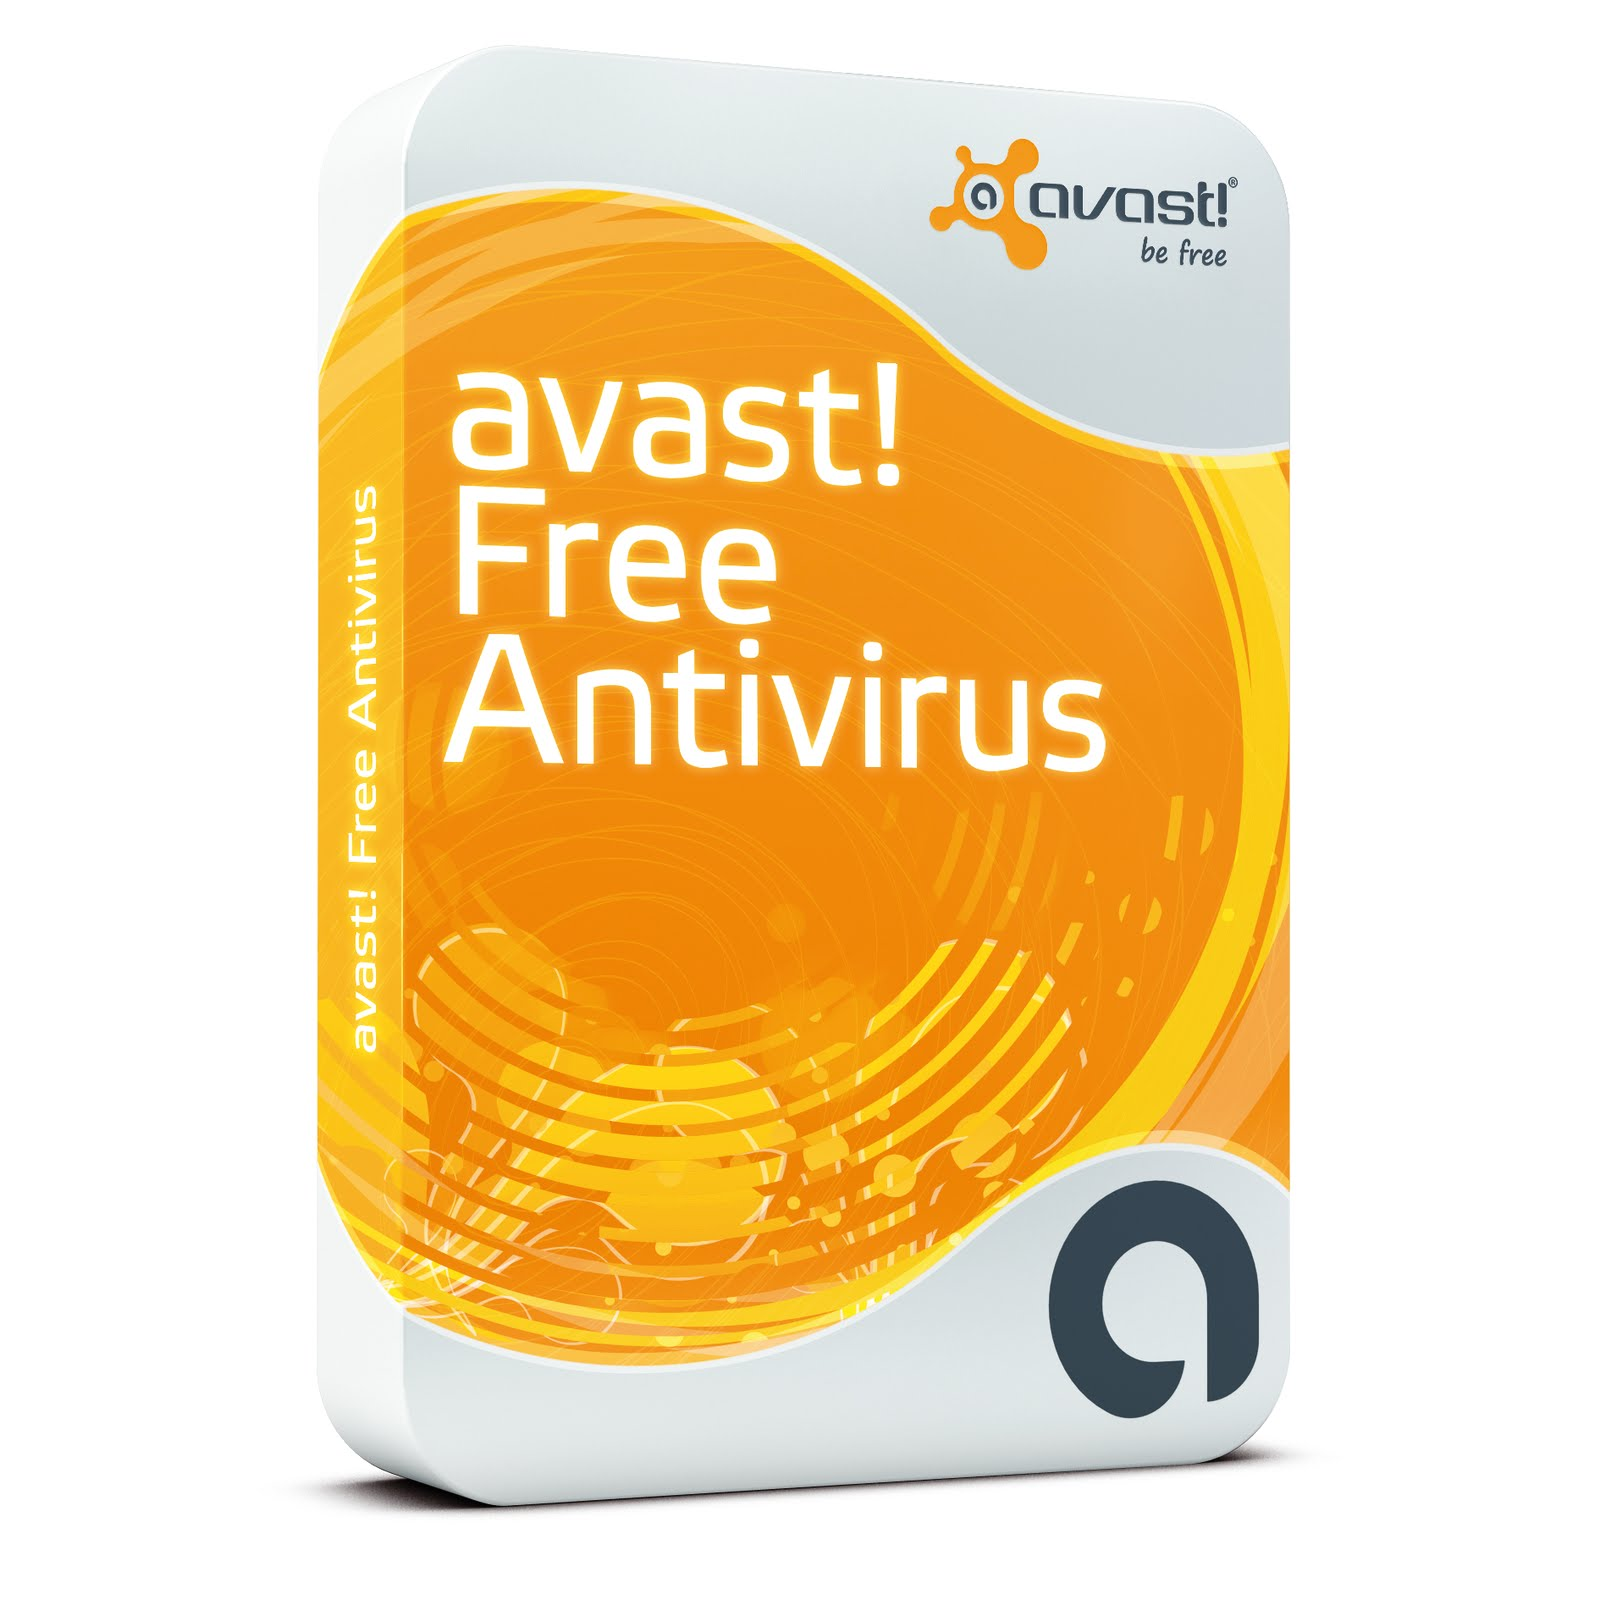 Hhmzz download avast free antivirus latest version 7 0 Online antivirus download